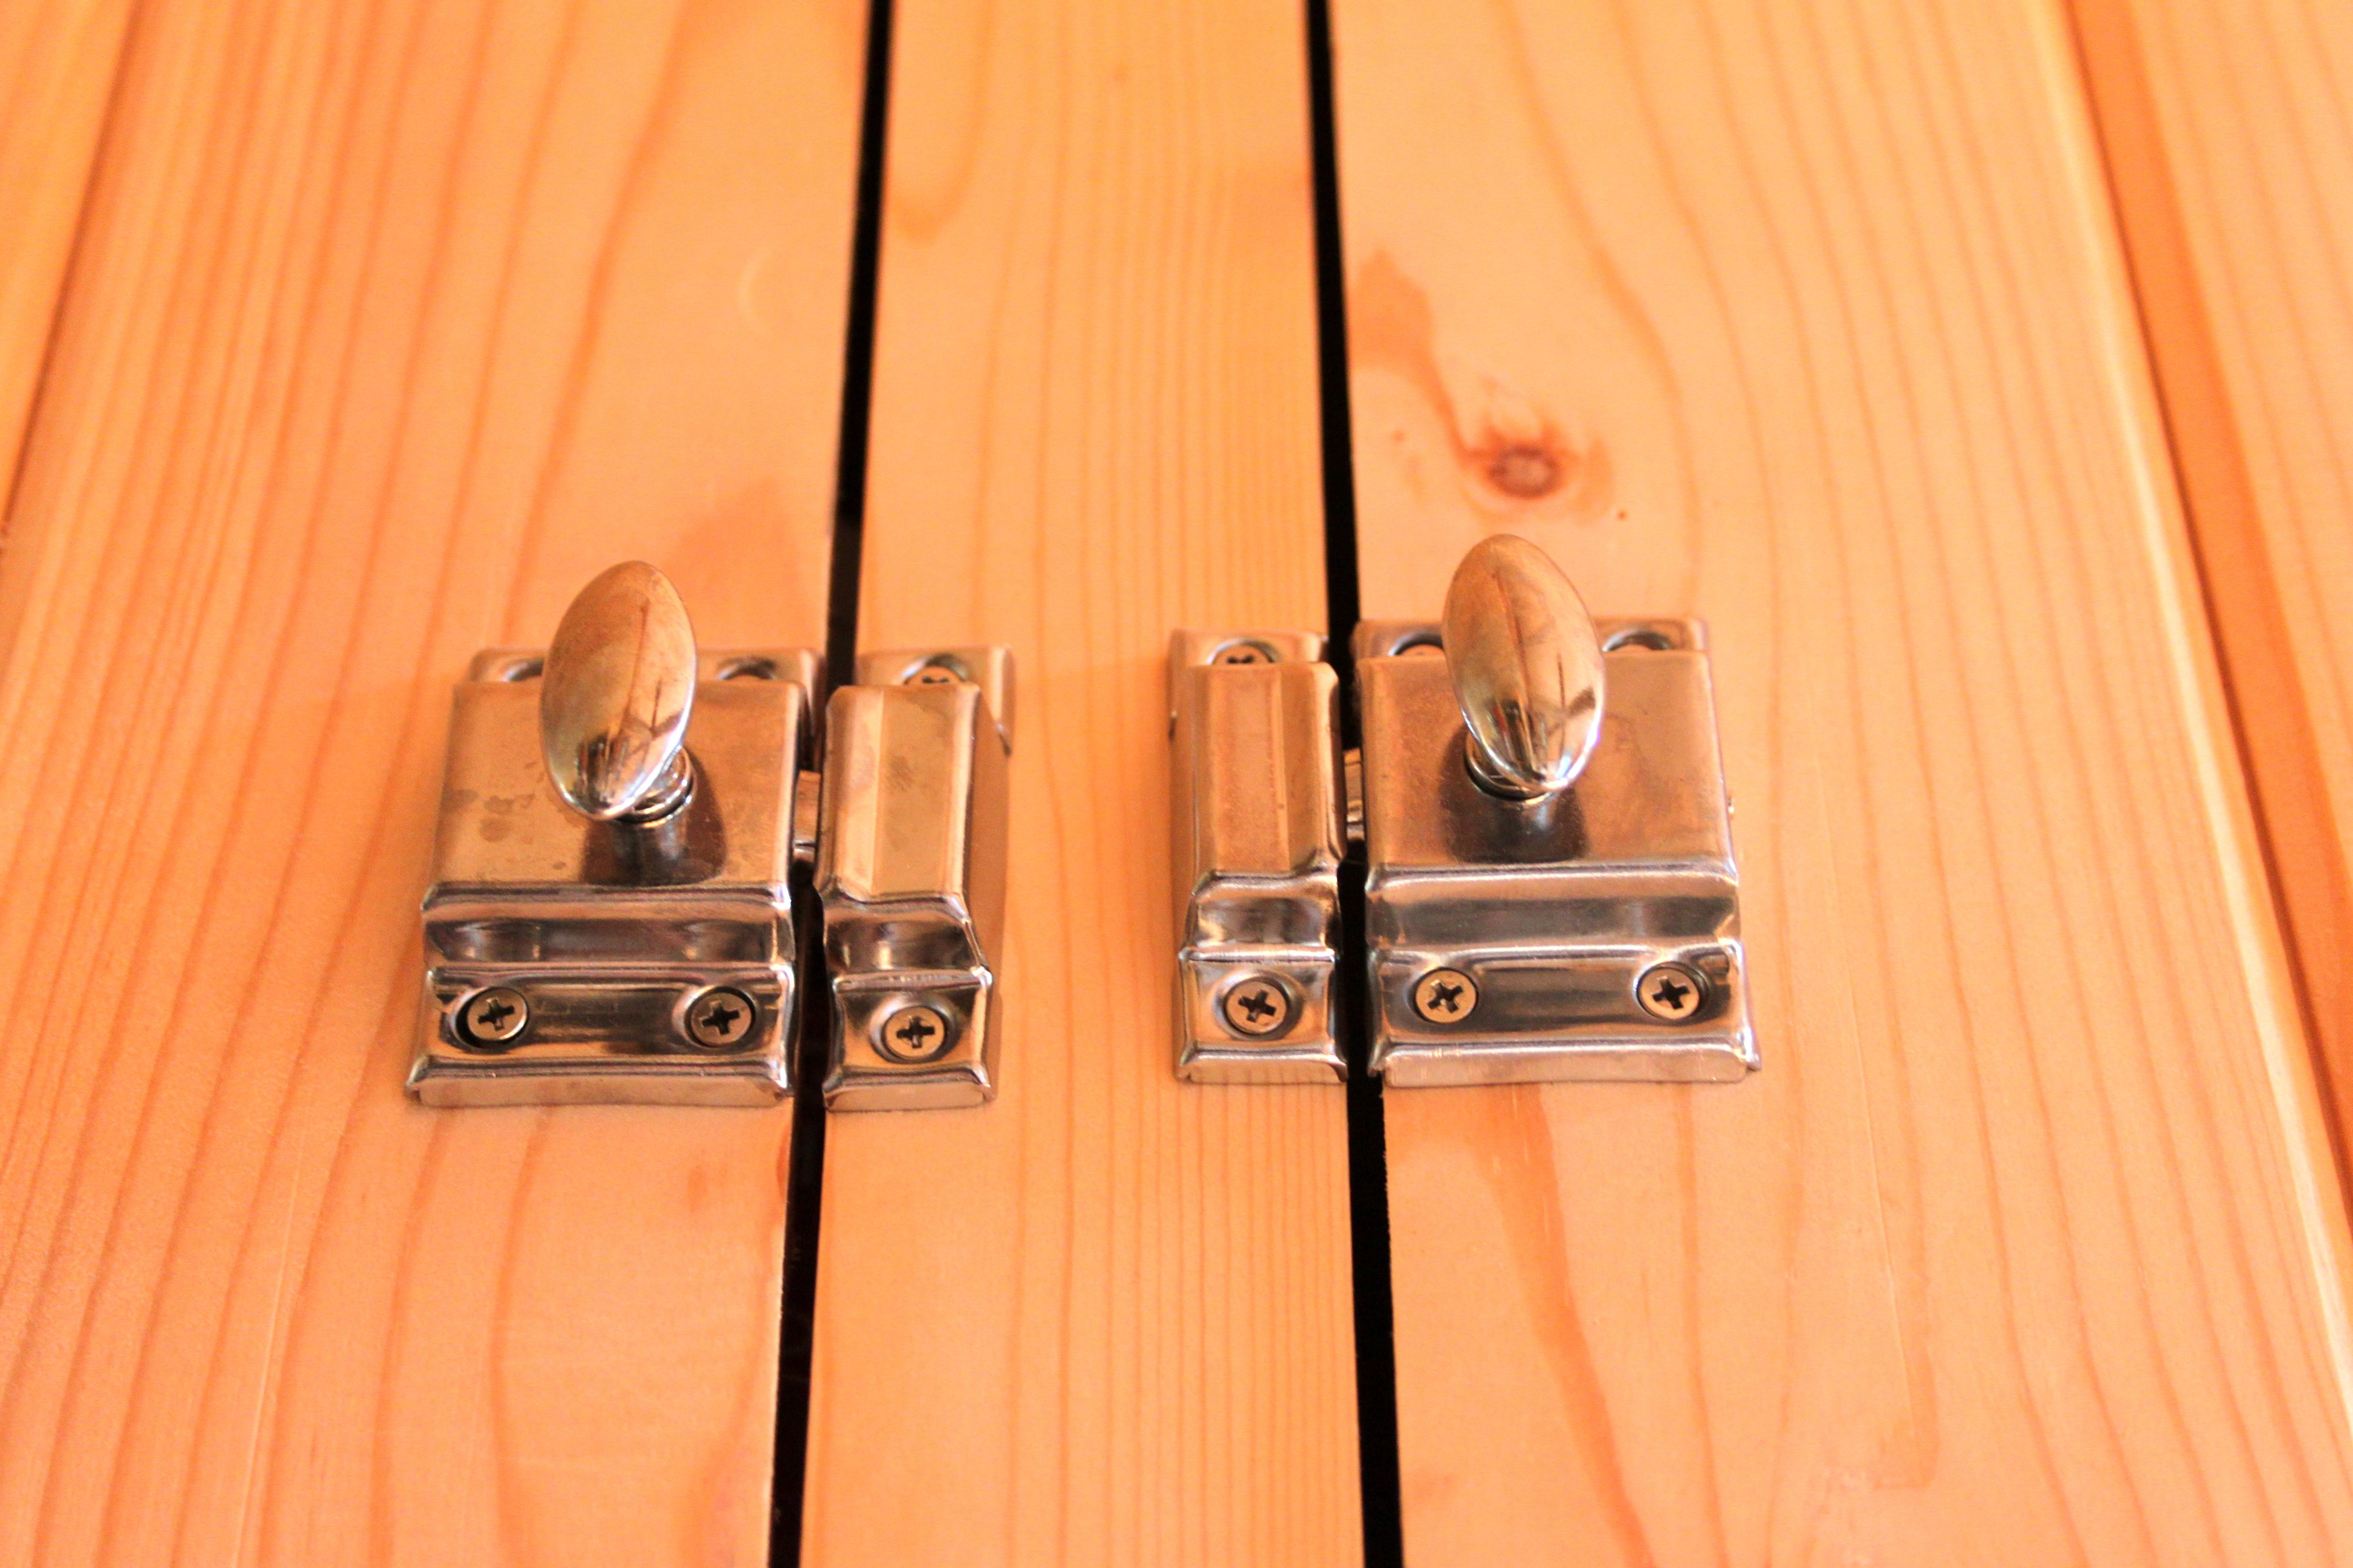 Tiny Home Designs: Tiny House Traditional Cabinet Latches